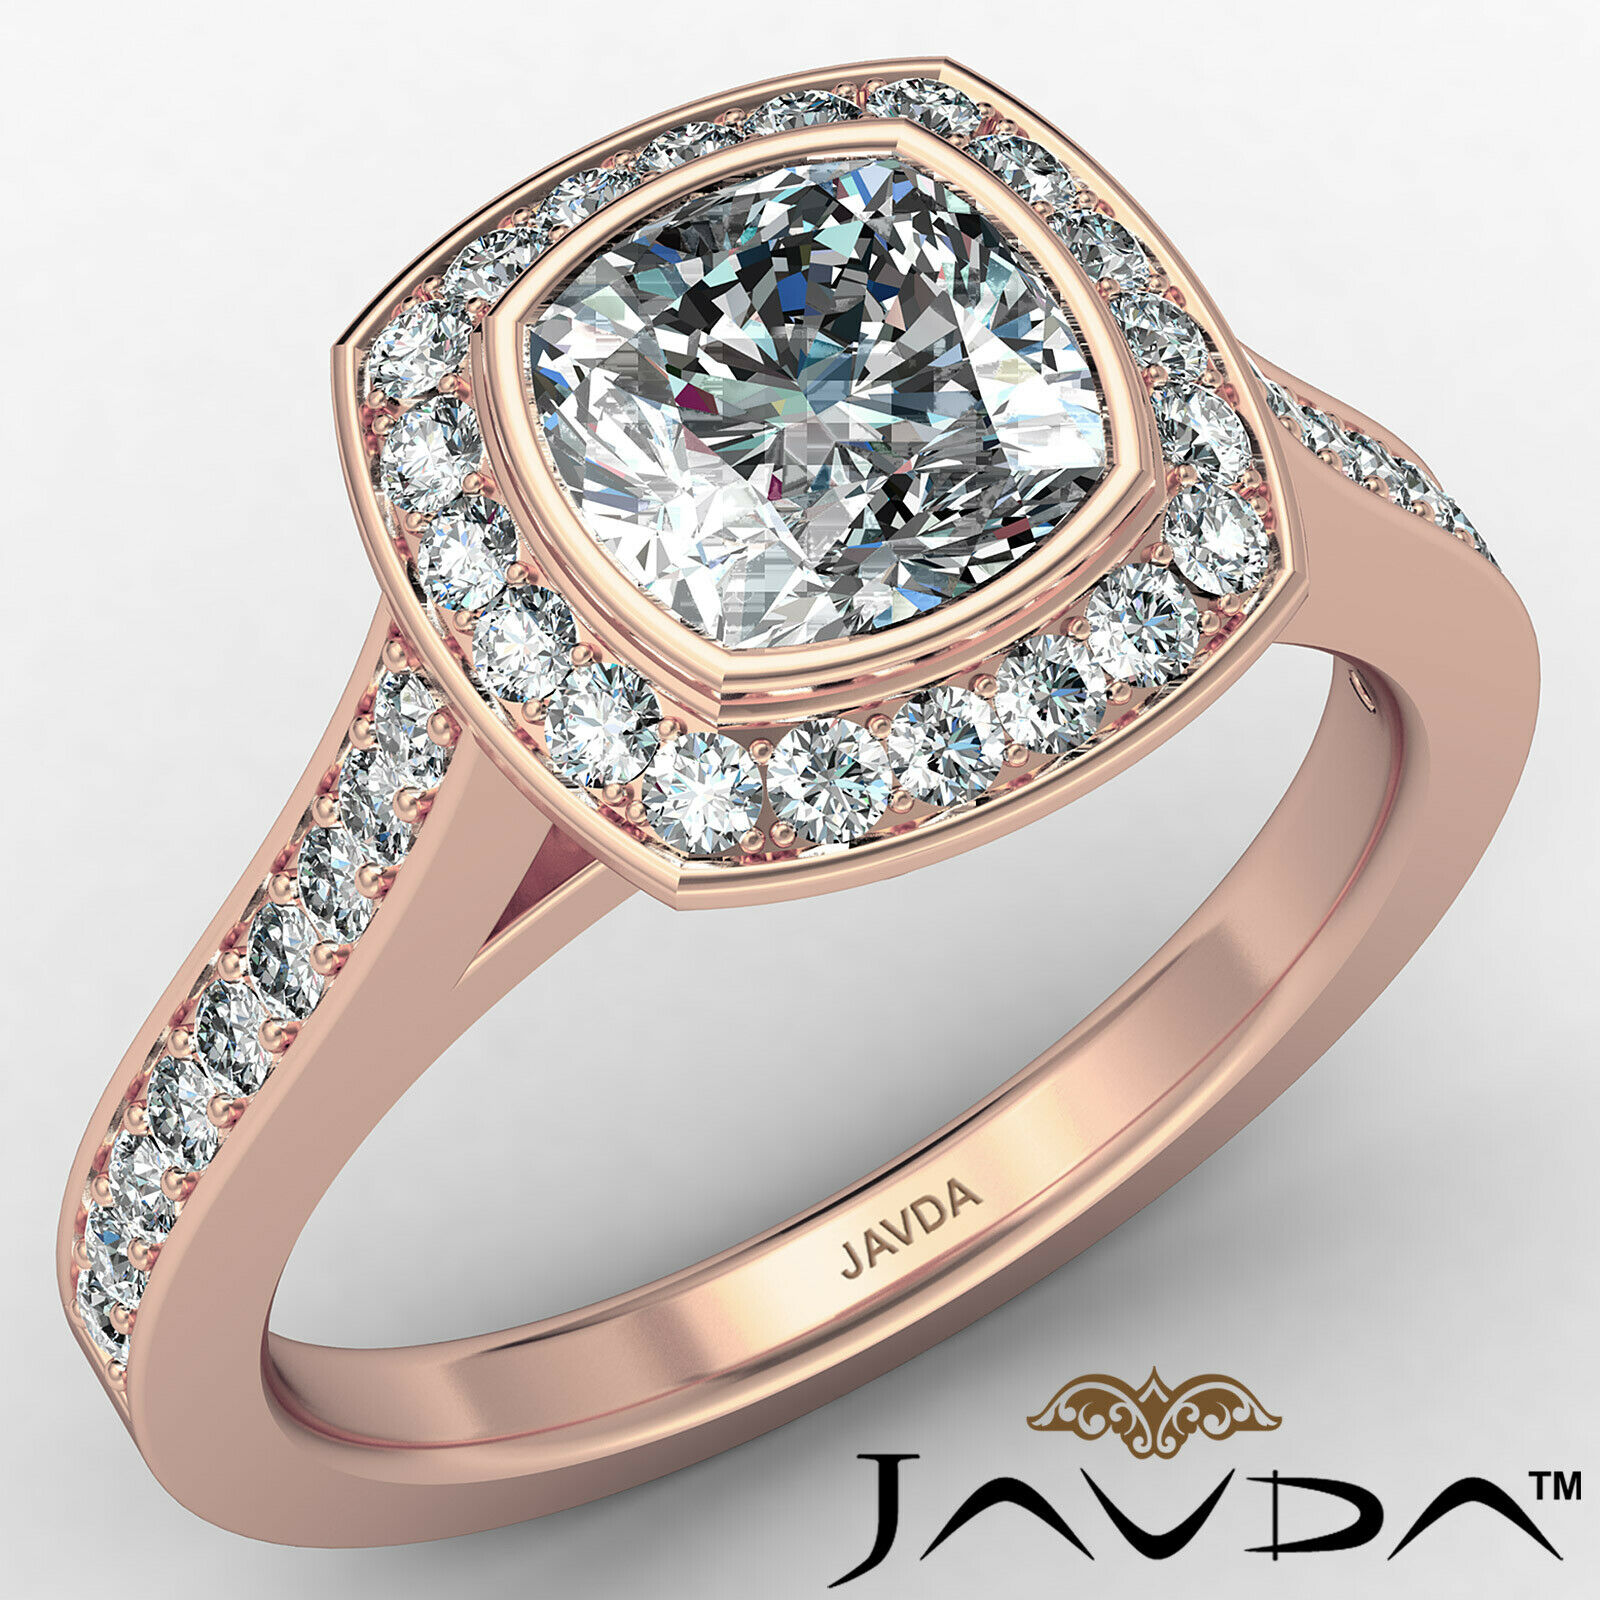 Micro Halo Cushion Diamond Engagement Ring GIA H Color & VS1 clarity 1.4 ctw 2